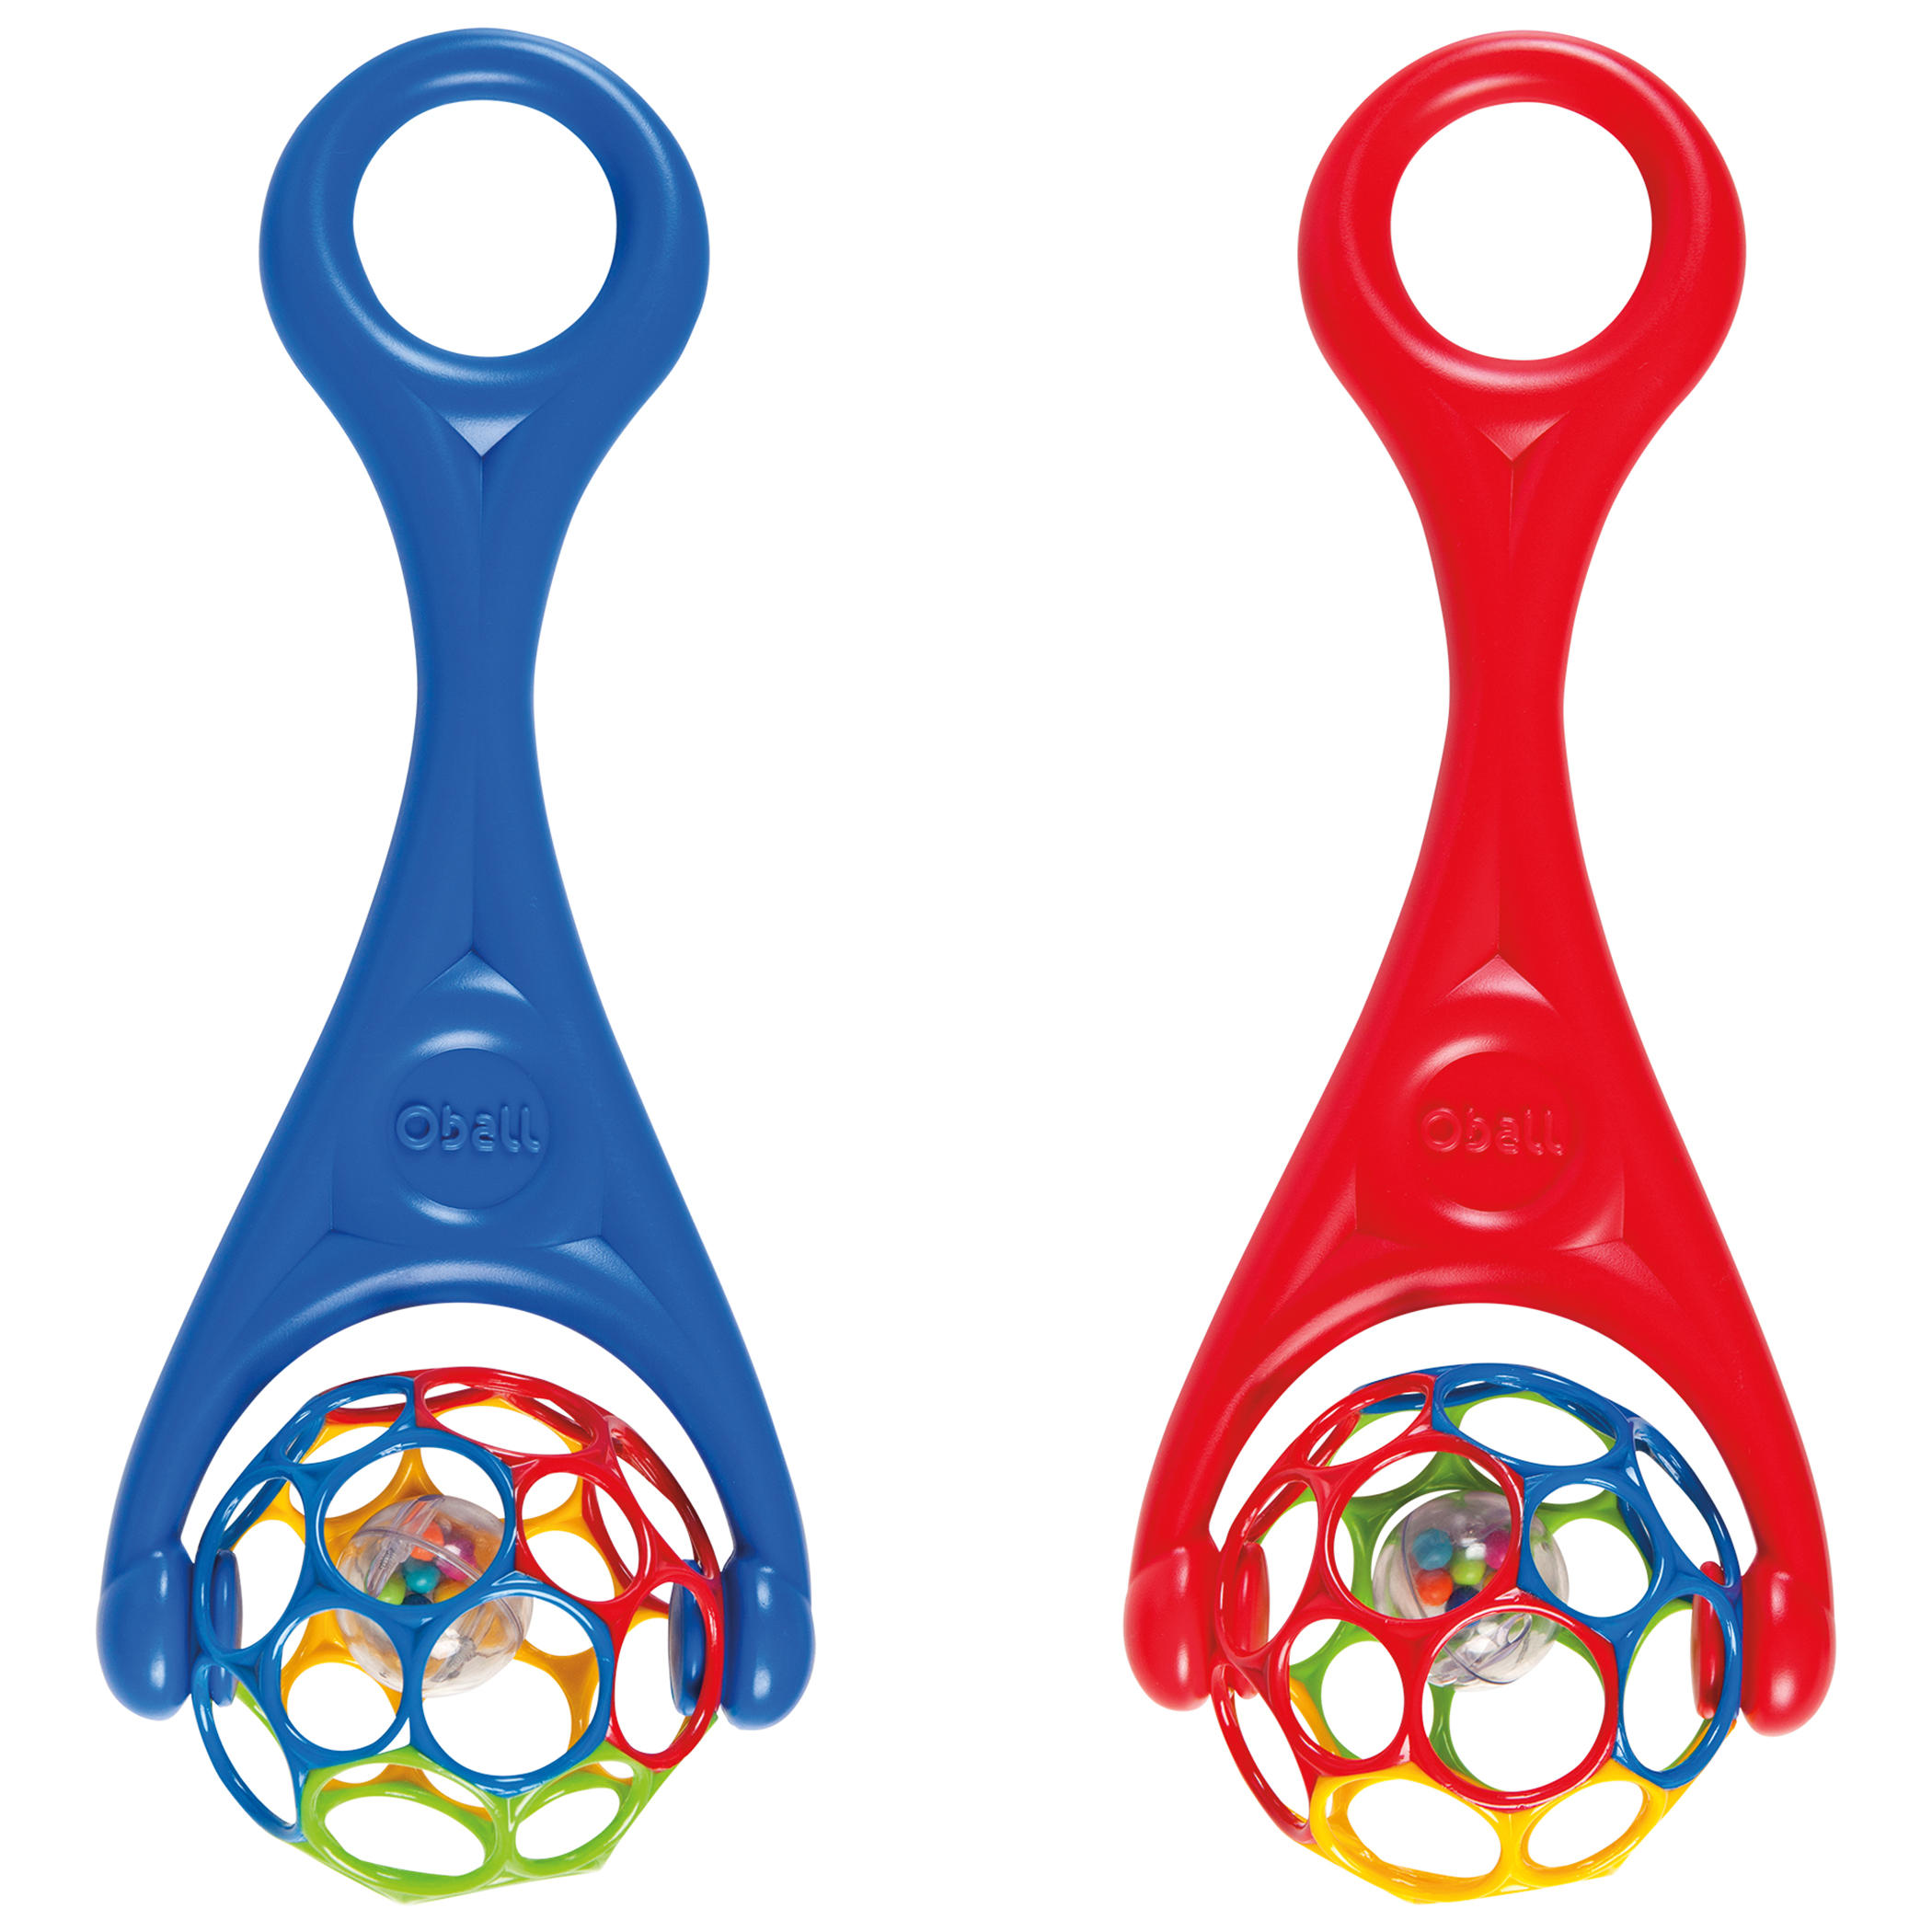 Oball 2-in-1 Roller Toy